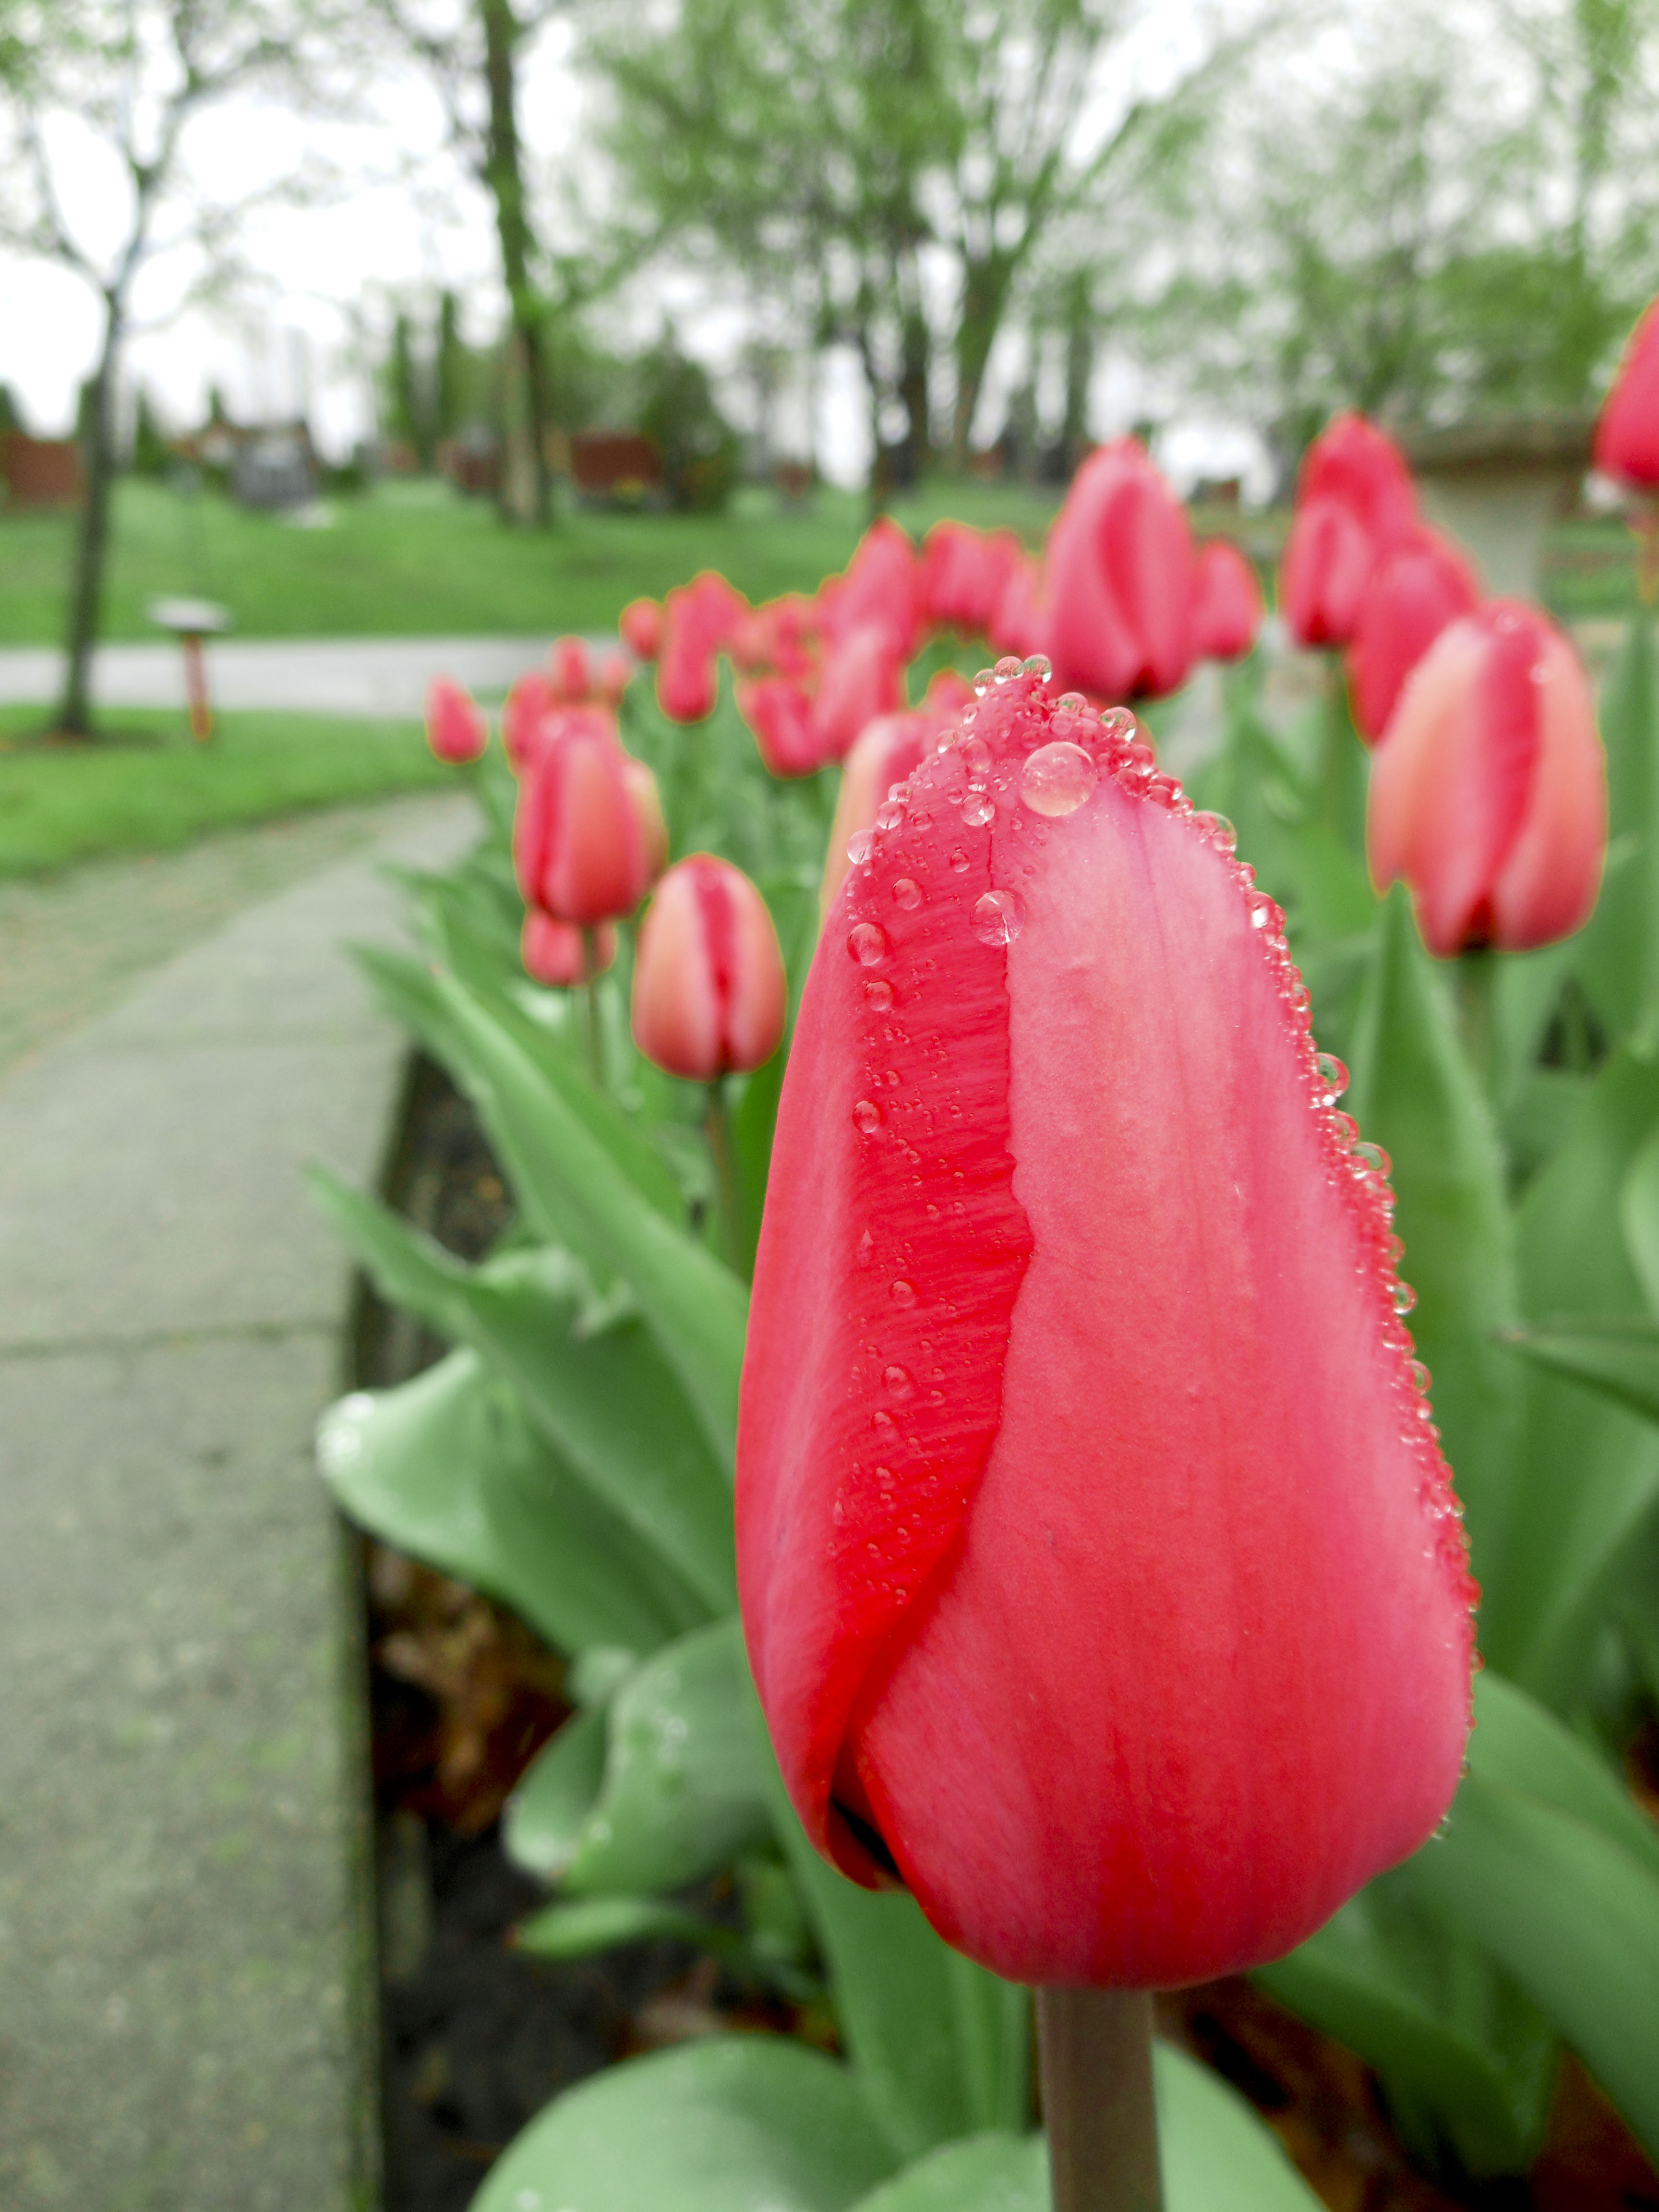 Image of a pink tulip with raindrops